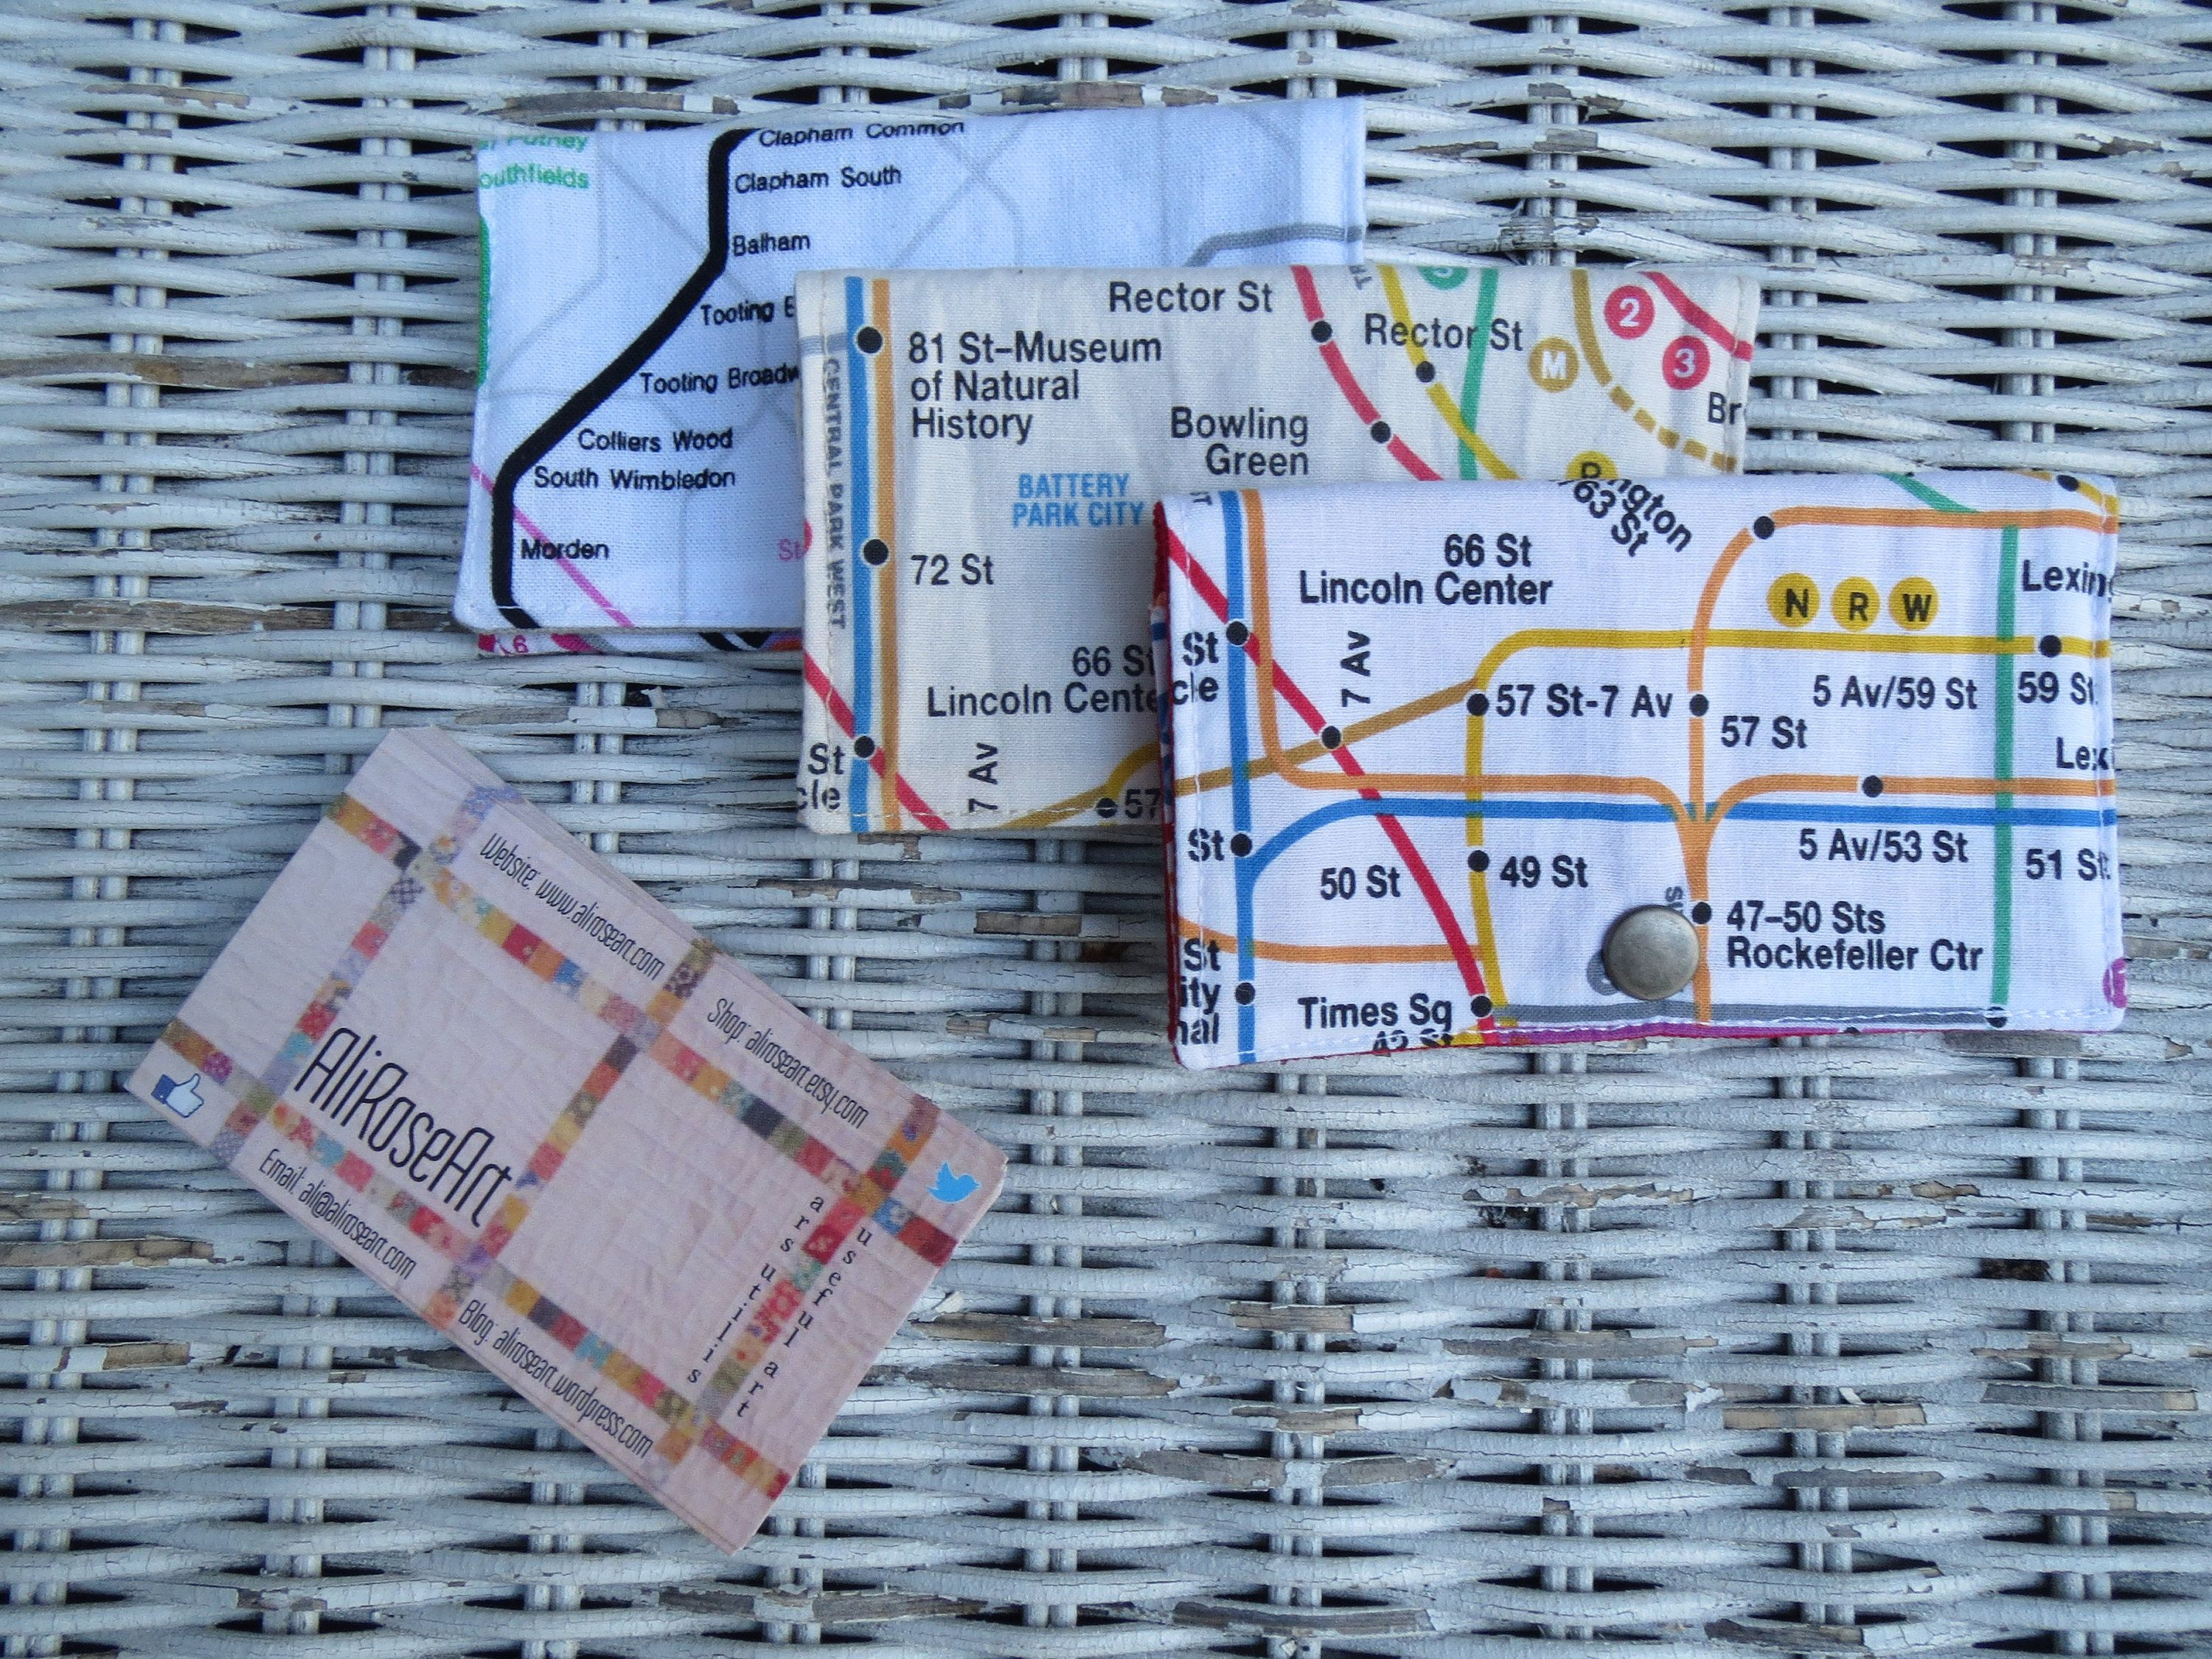 New york city london subway map business card cutie credit card new york city london subway map business card cutie credit card case minimalist reheart Image collections